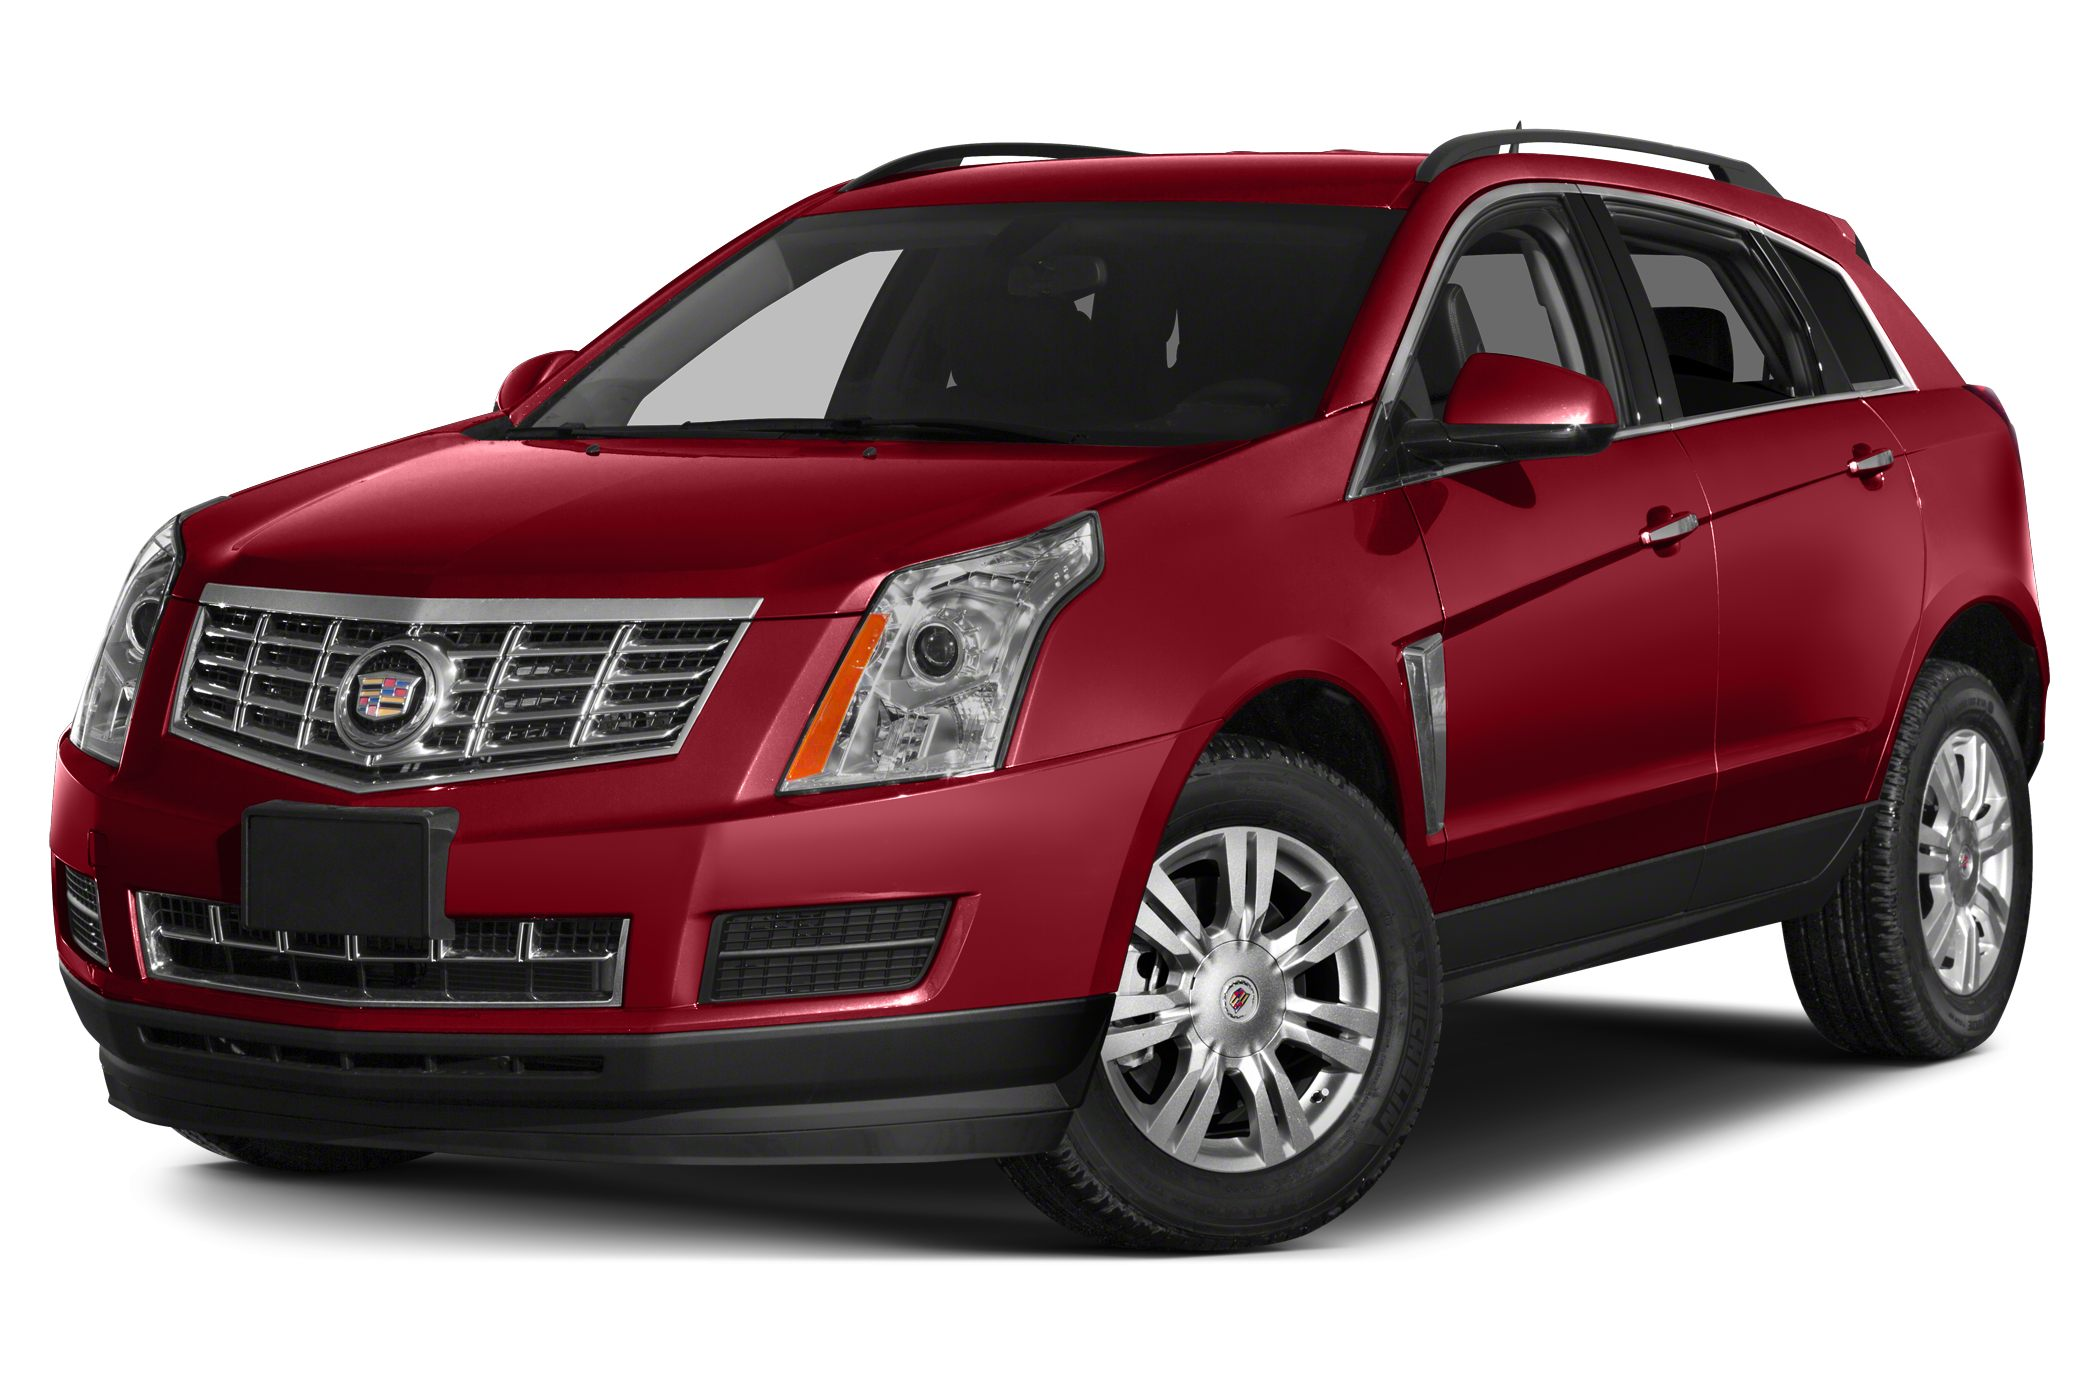 2015 Cadillac SRX Premium Collection SUV for sale in Pensacola for $49,915 with 171 miles.